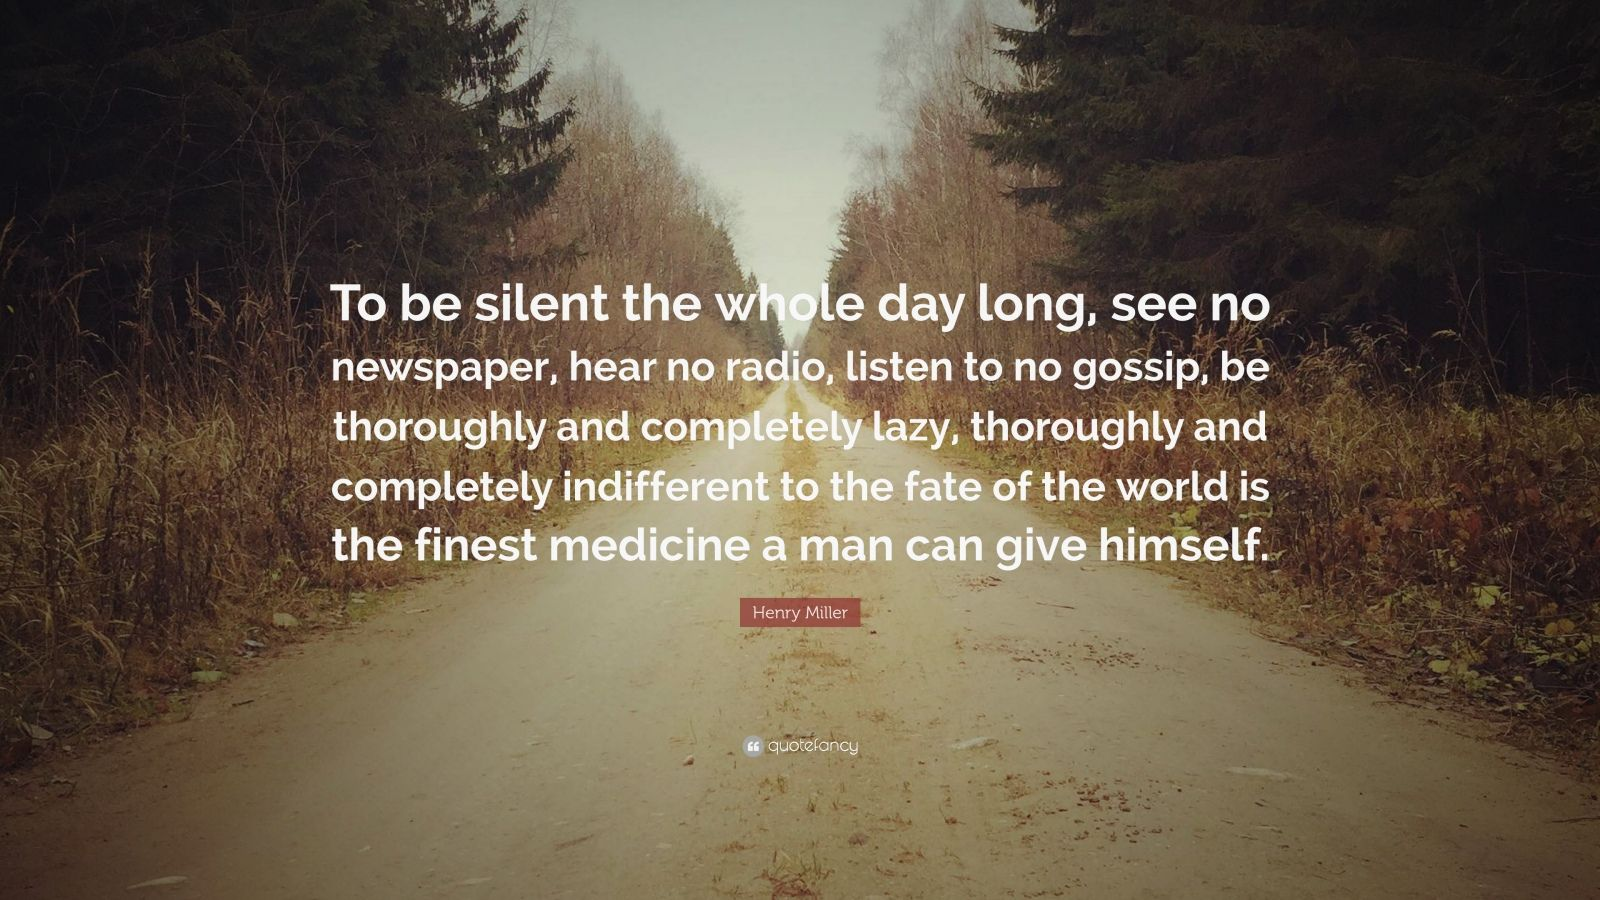 """Henry Miller Quote: """"To be silent the whole day long, see no newspaper, hear no radio, listen to no gossip, be thoroughly and completely lazy, thoroughly and completely indifferent to the fate of the world is the finest medicine a man can give himself."""""""